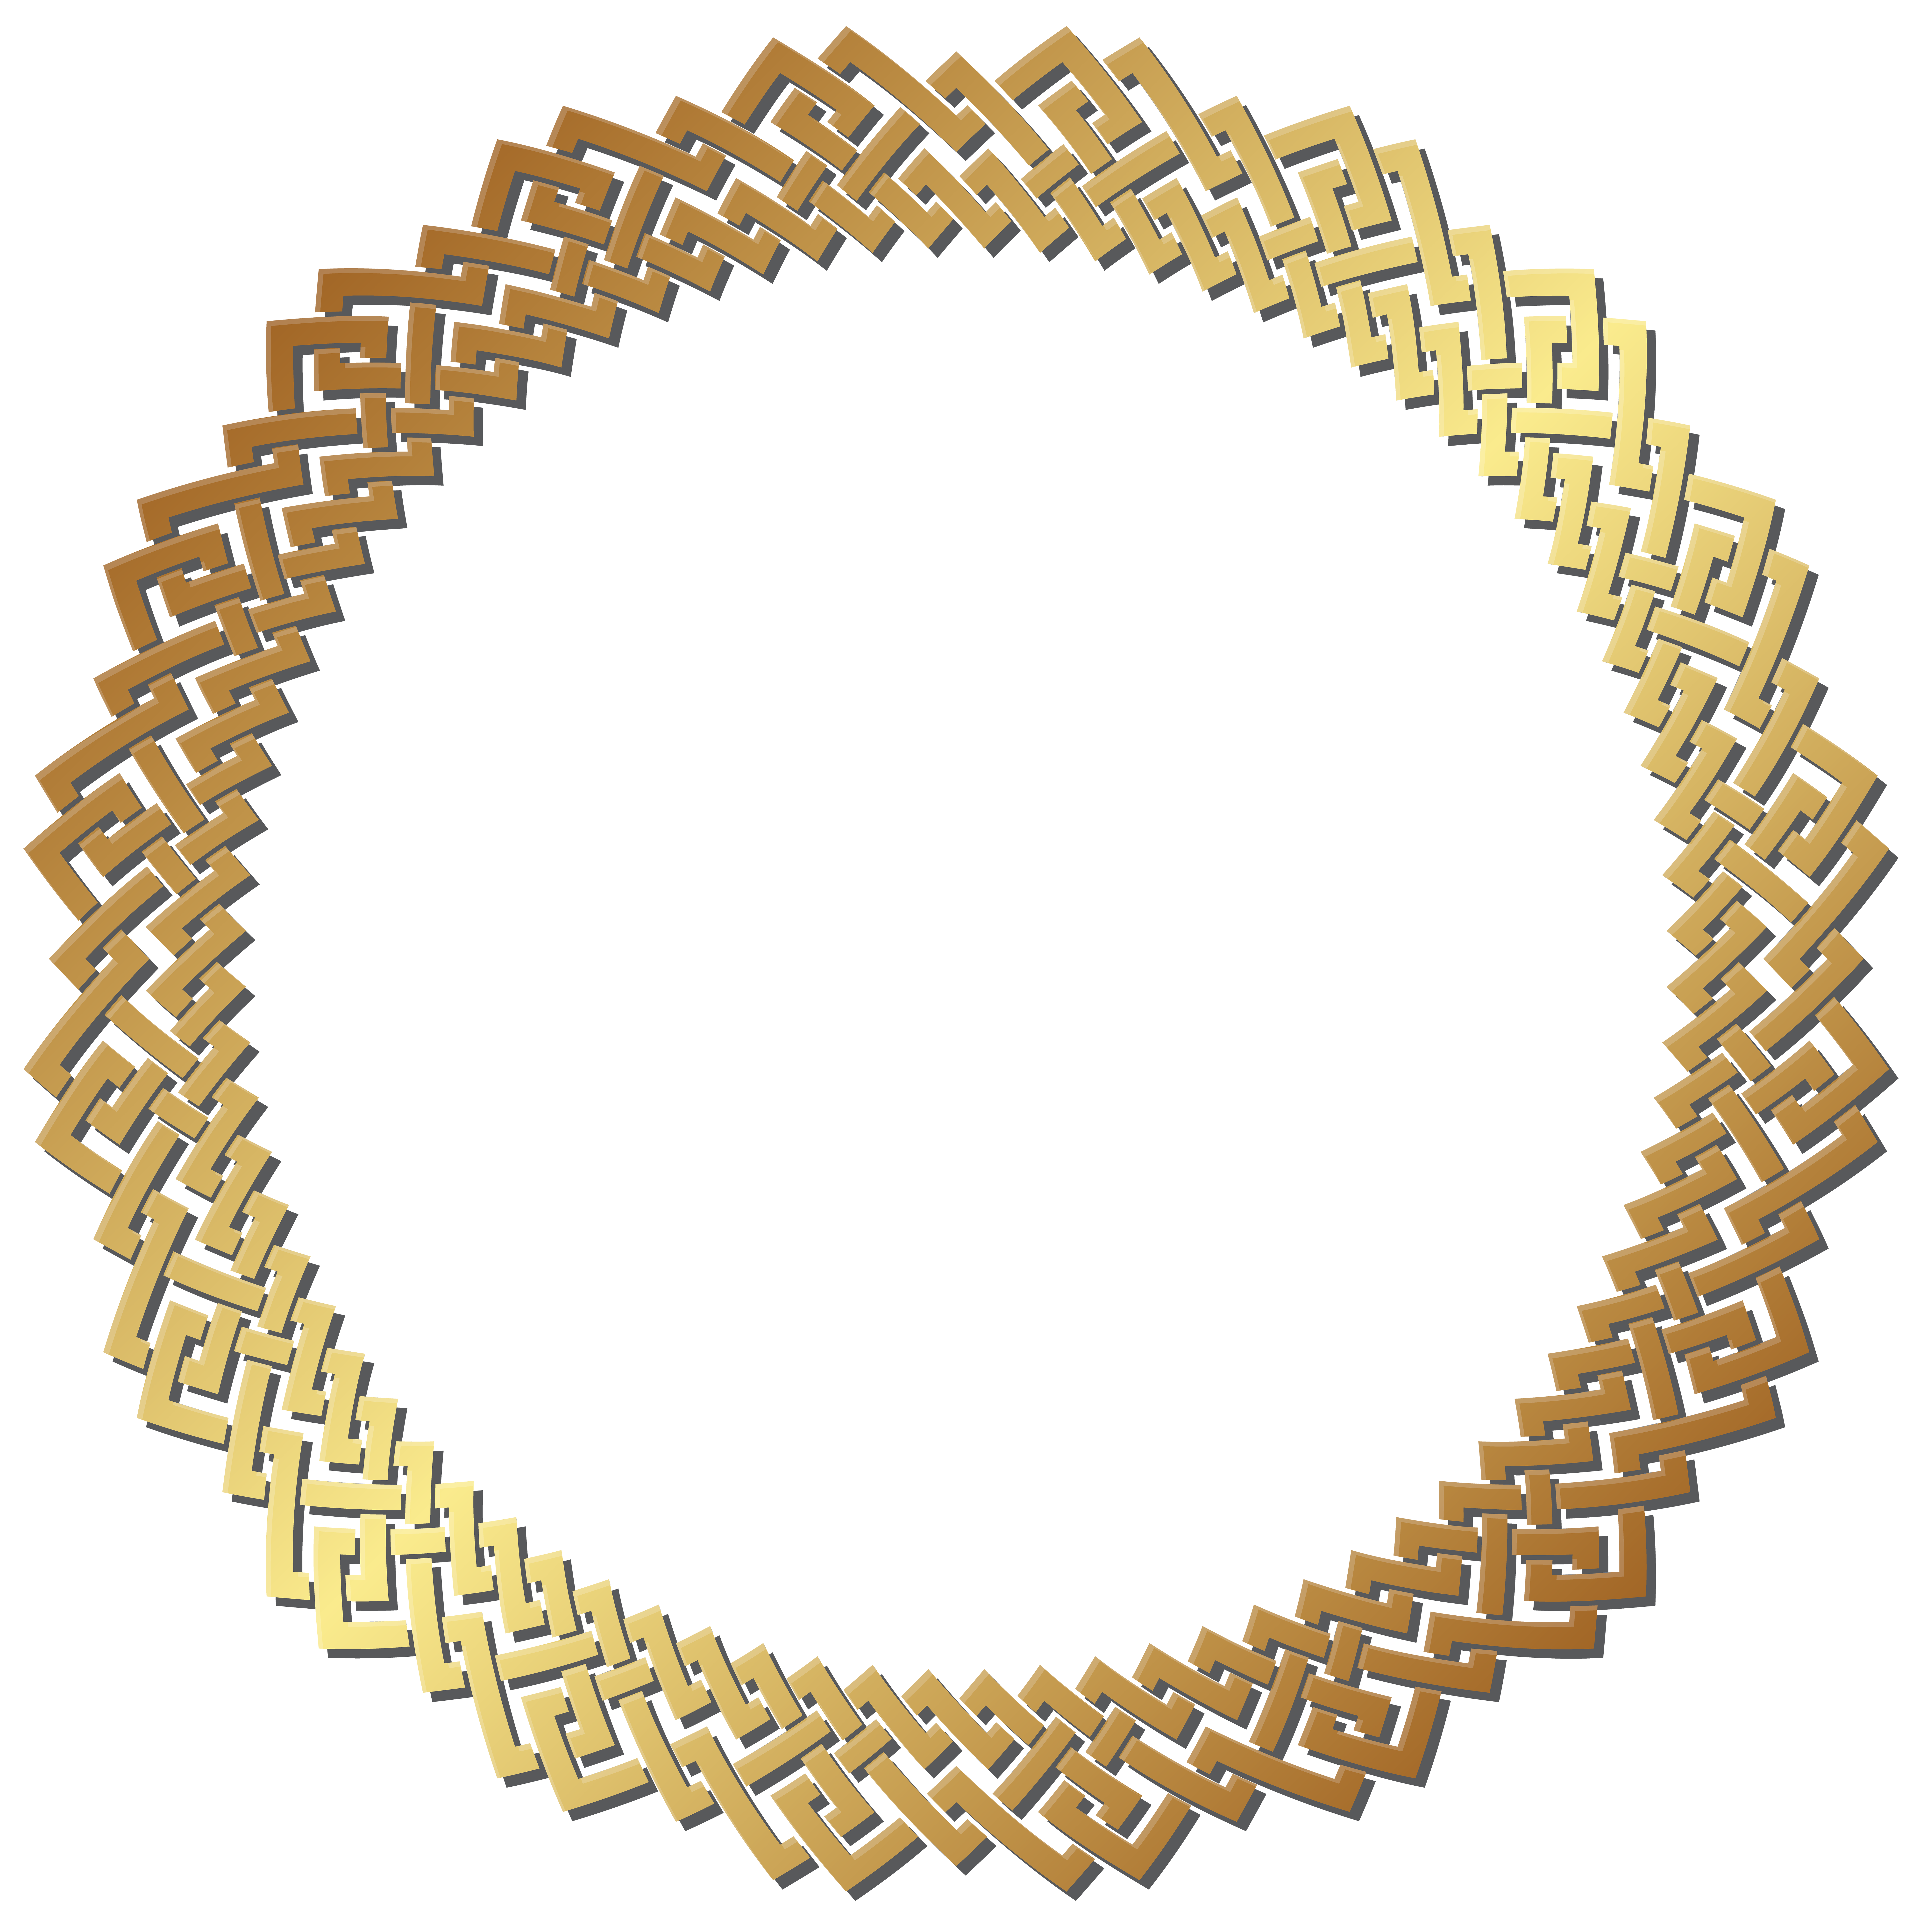 Round golden frame transparent. Heat clipart border